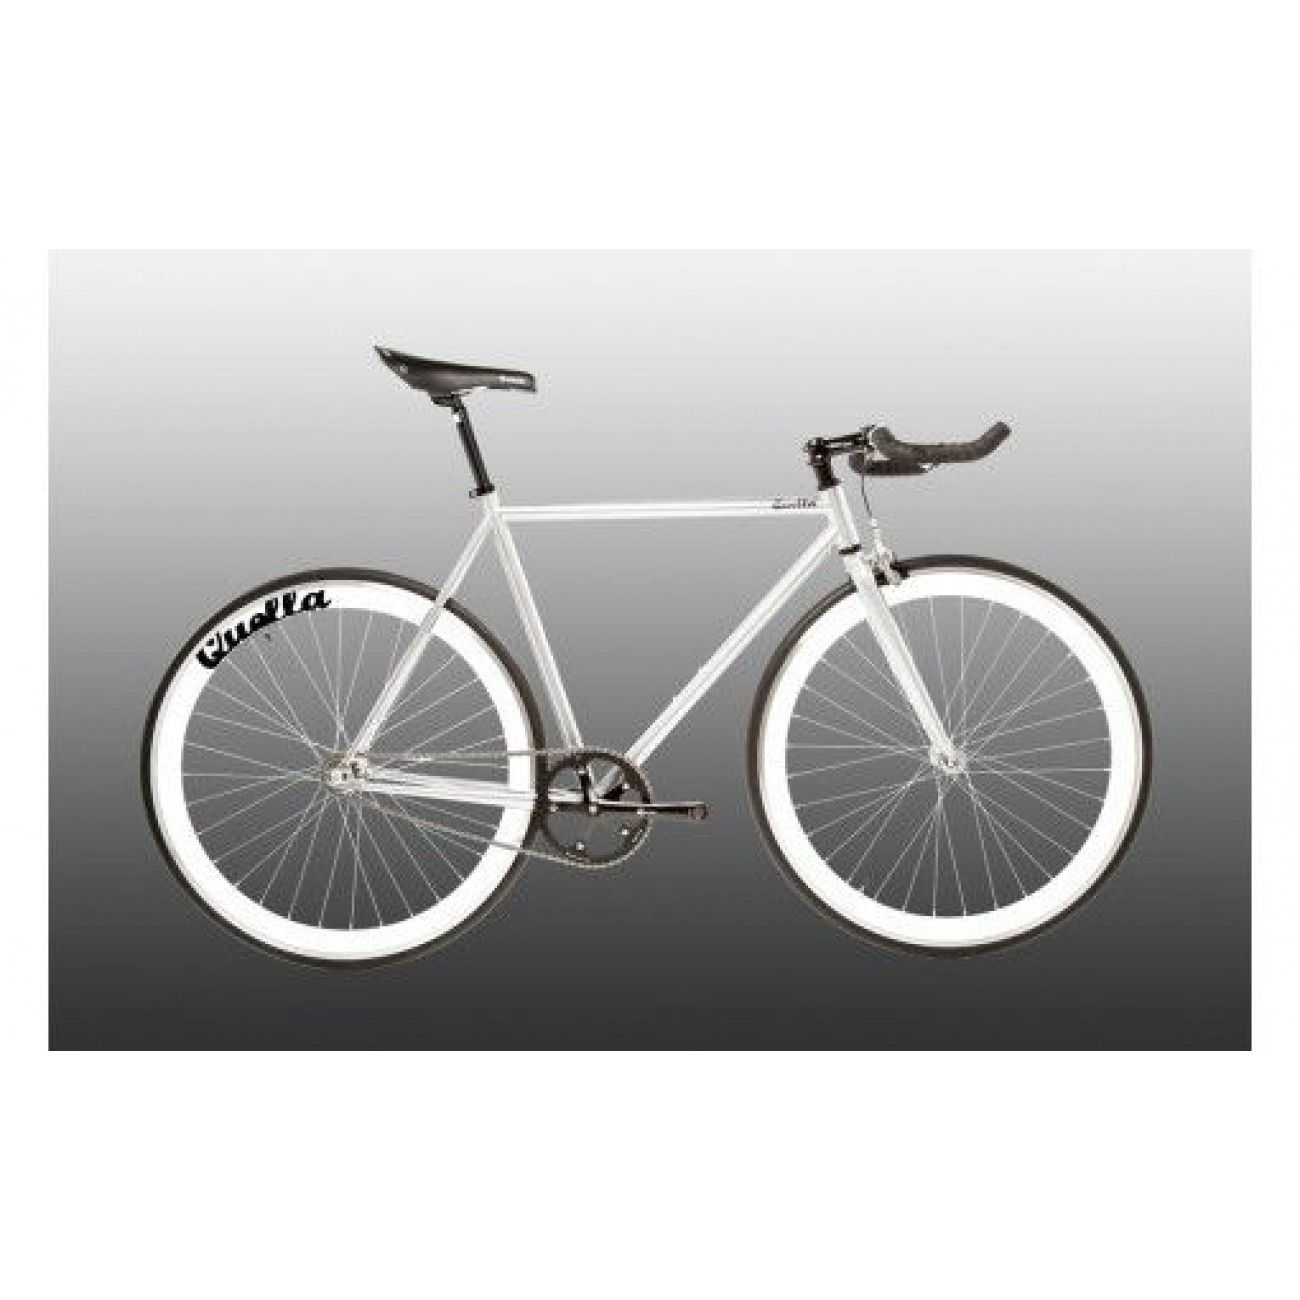 Quella Bicycle Ok I Don T Ride Pinning For A Friend Who Is The Creator Bicycle Single Speed Bike Bicycle Design